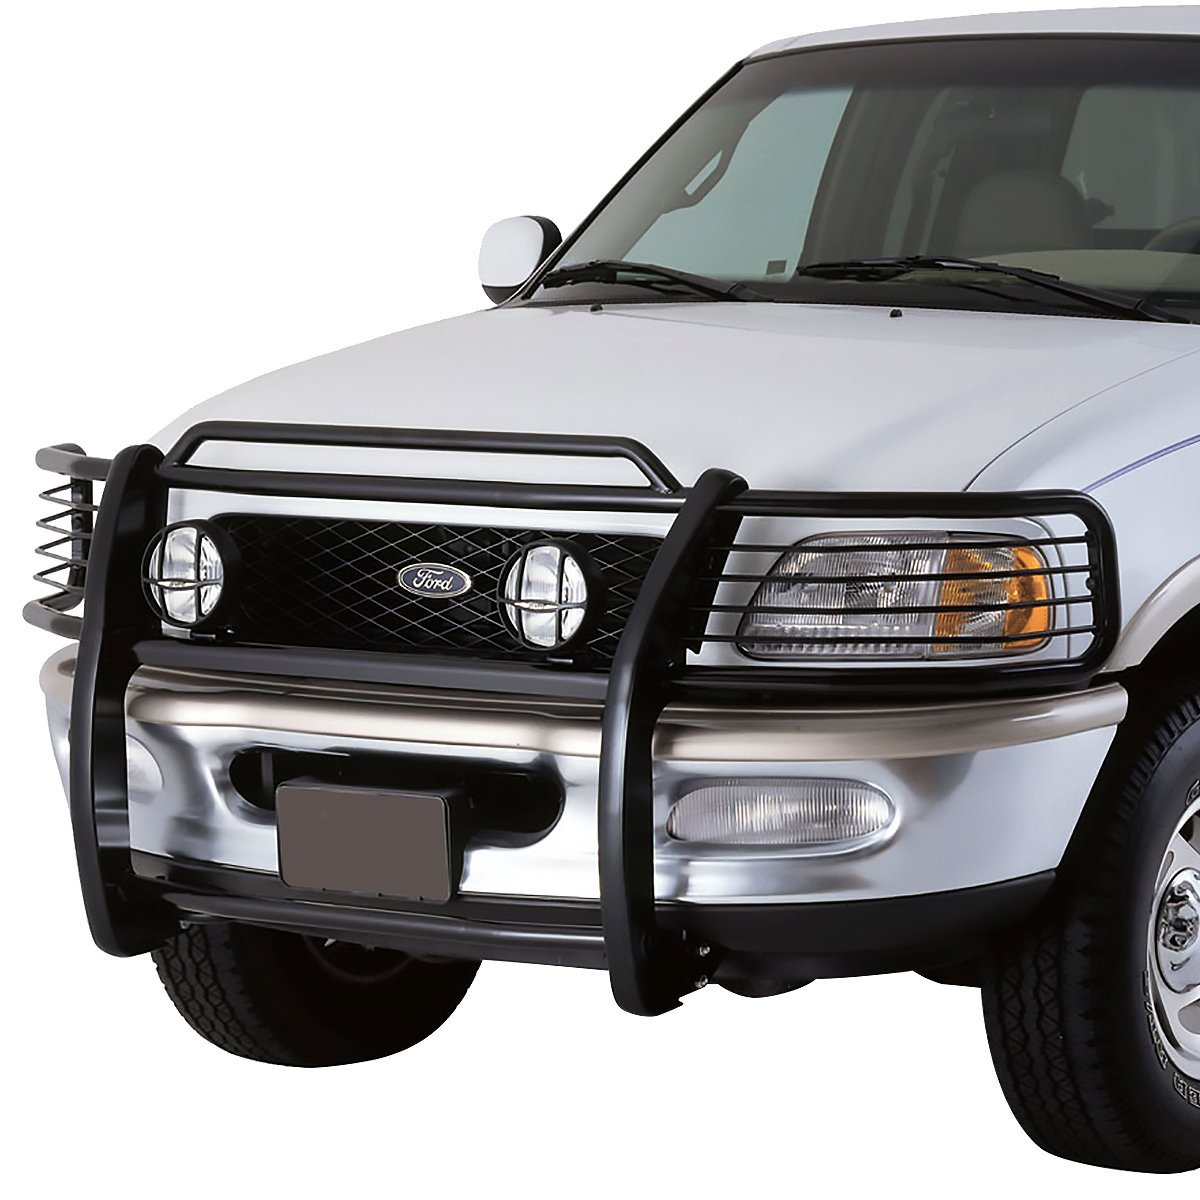 Ford F150 99: 99-02 Ford Expedition / 99-03 F150 / F250 2WD Front Bumper